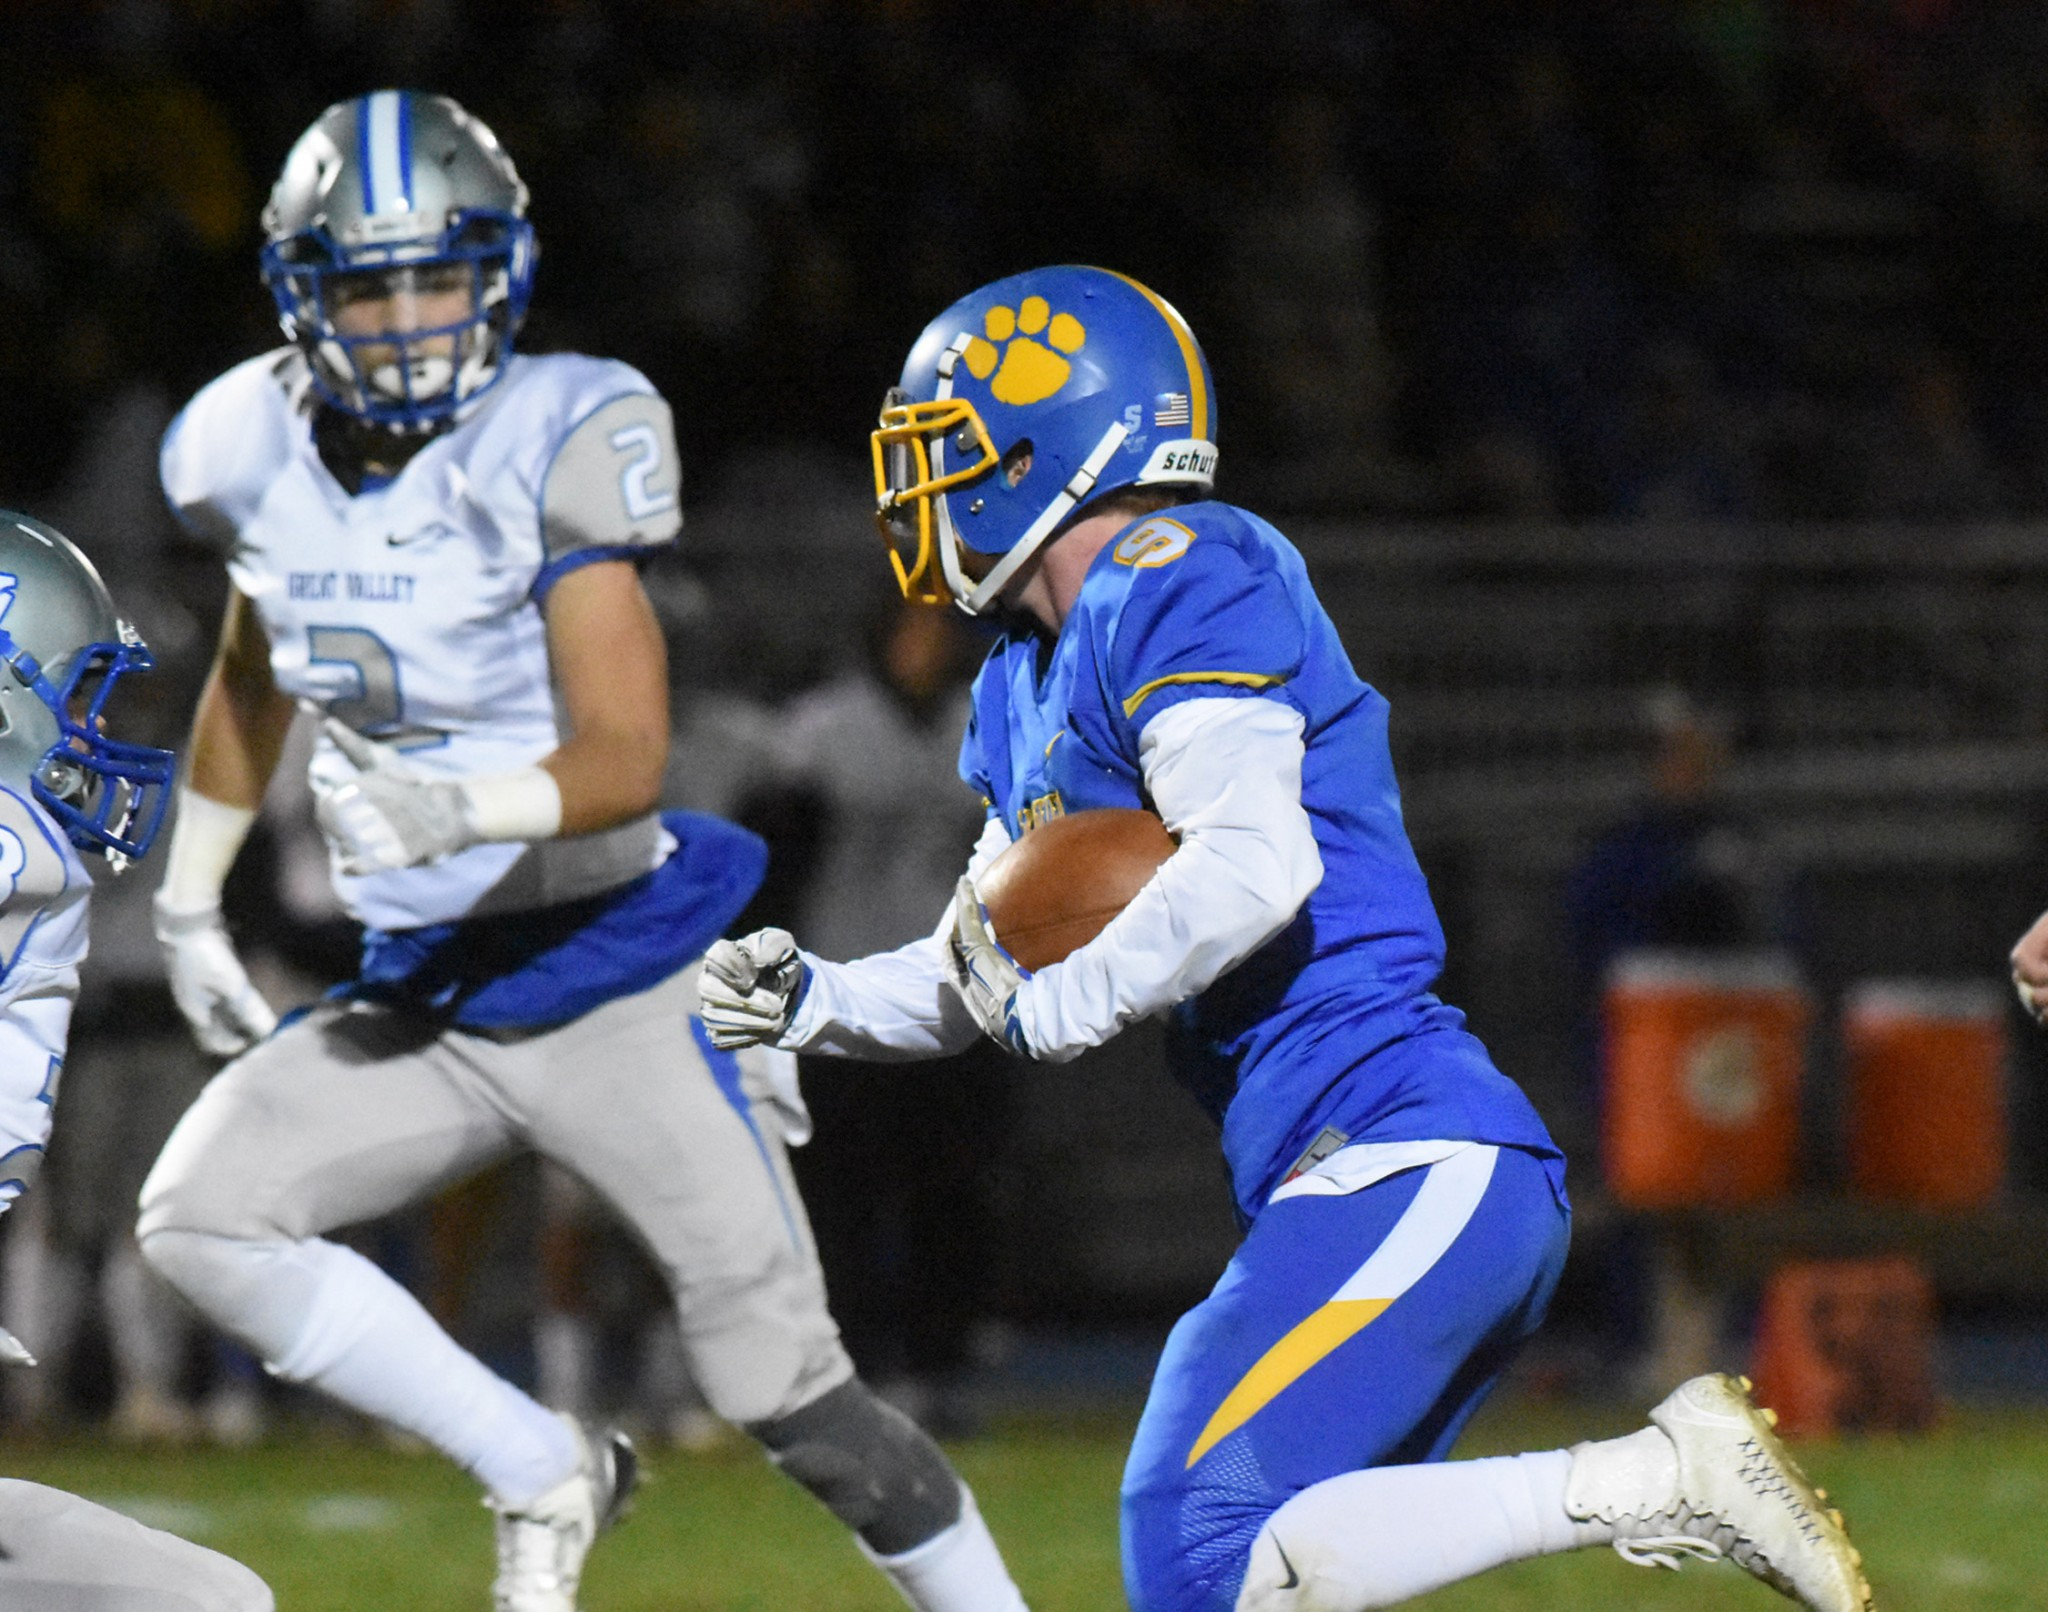 Springfield receiver Joe Kennedy tries to evade Great Valley defender Anthony Liberato during the Cougars' 24-10 win in a District 1 Class 5A quarterfinal game Friday night. (Digital First Media/Anne Neborak)